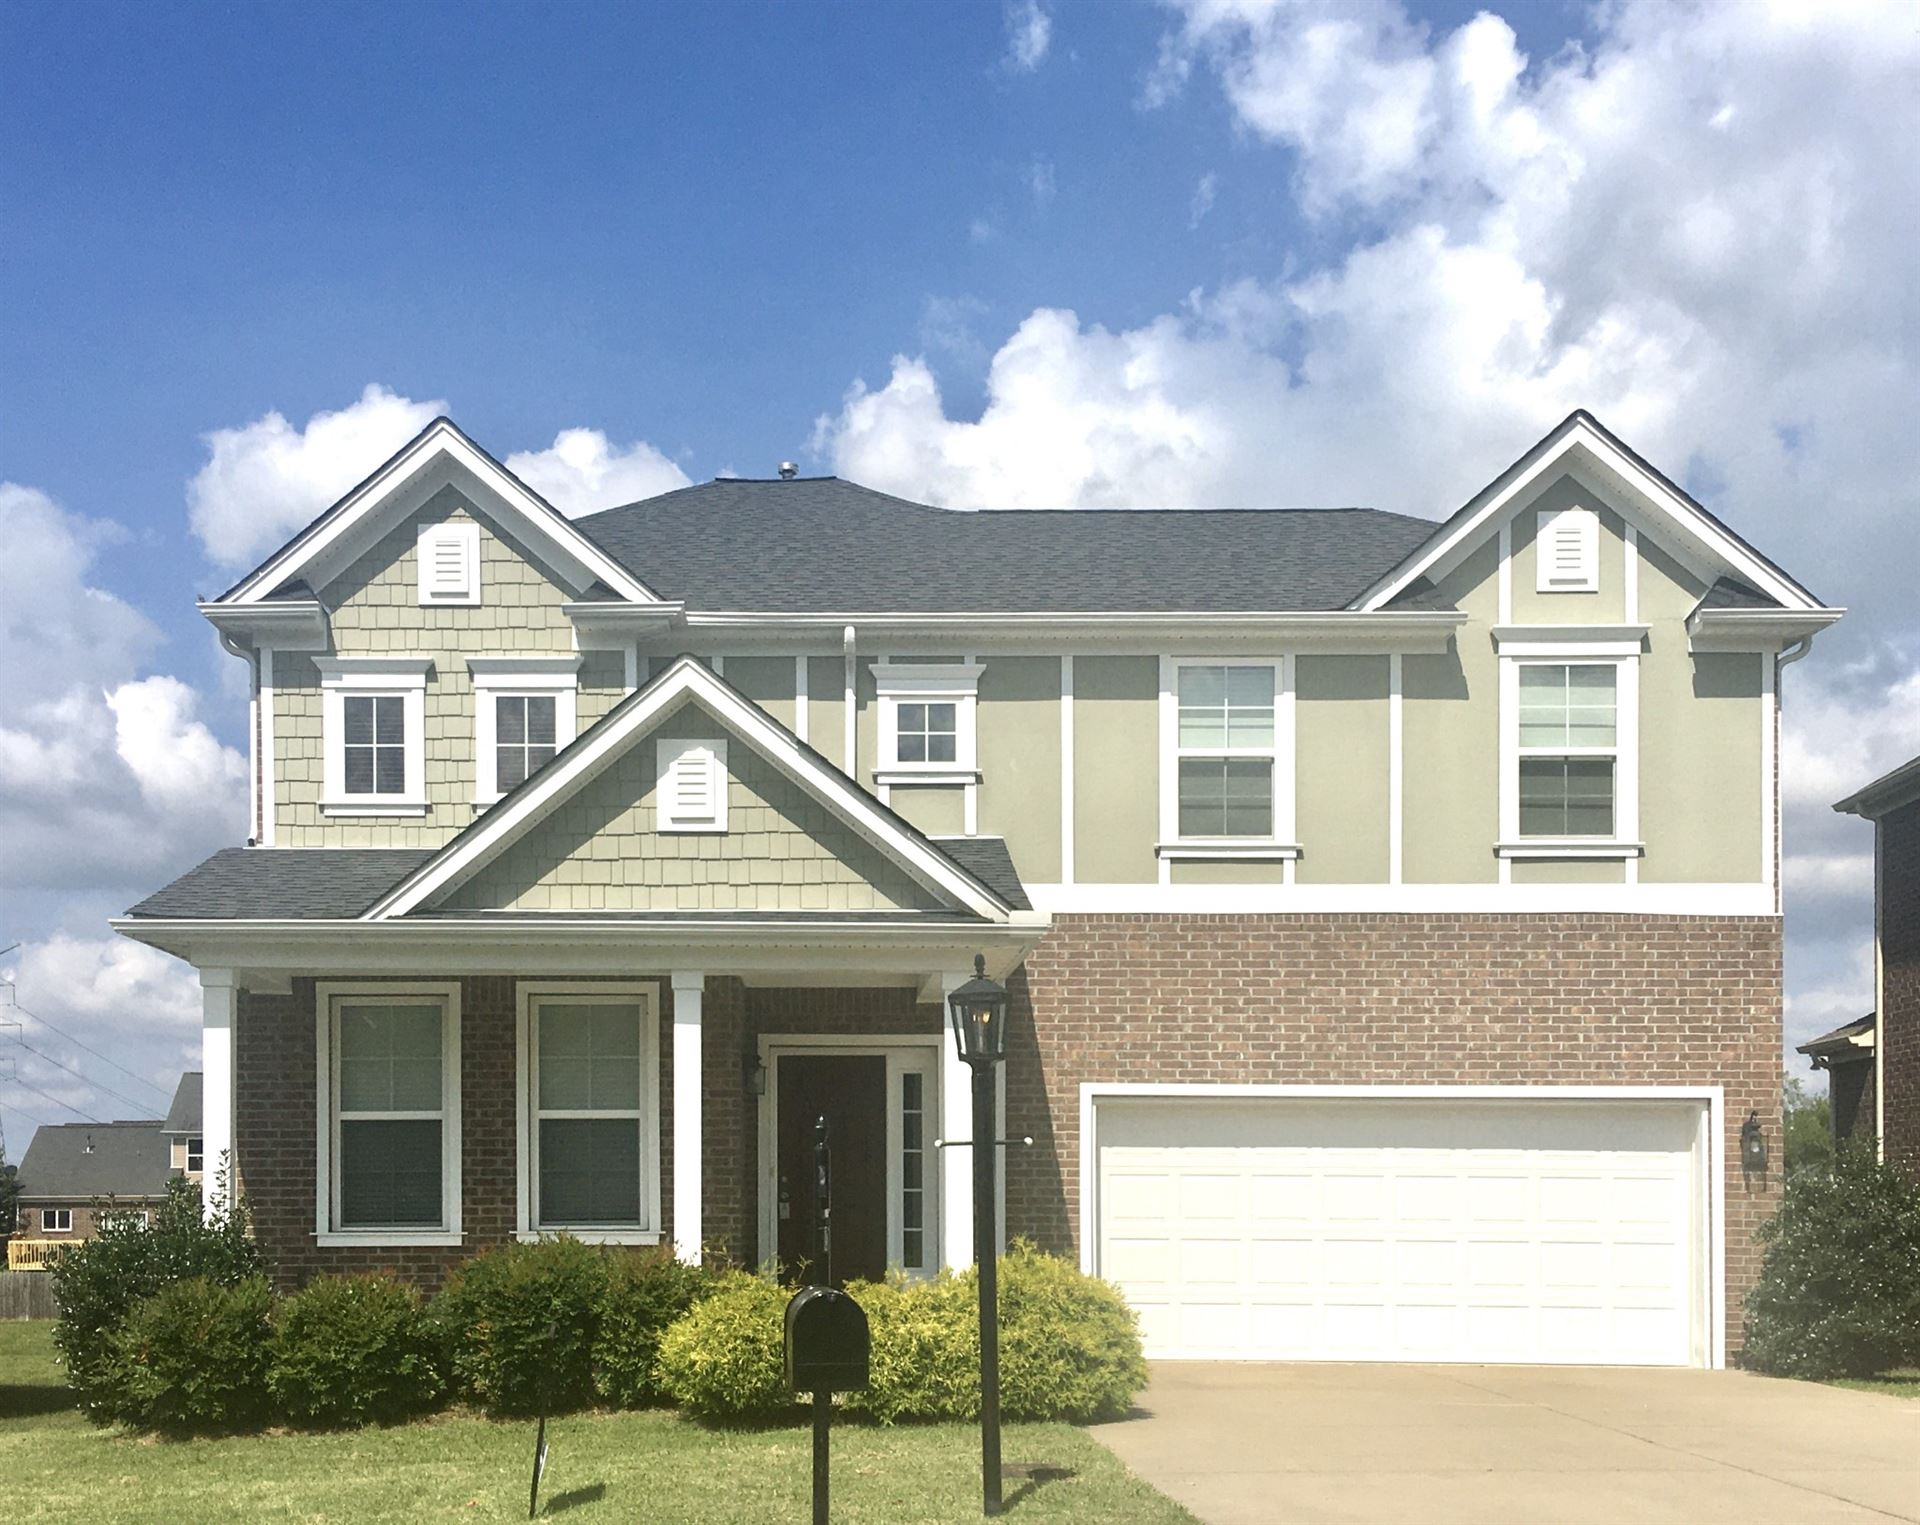 Photo of 1633 Robindale Dr, Hermitage, TN 37076 (MLS # 2166772)